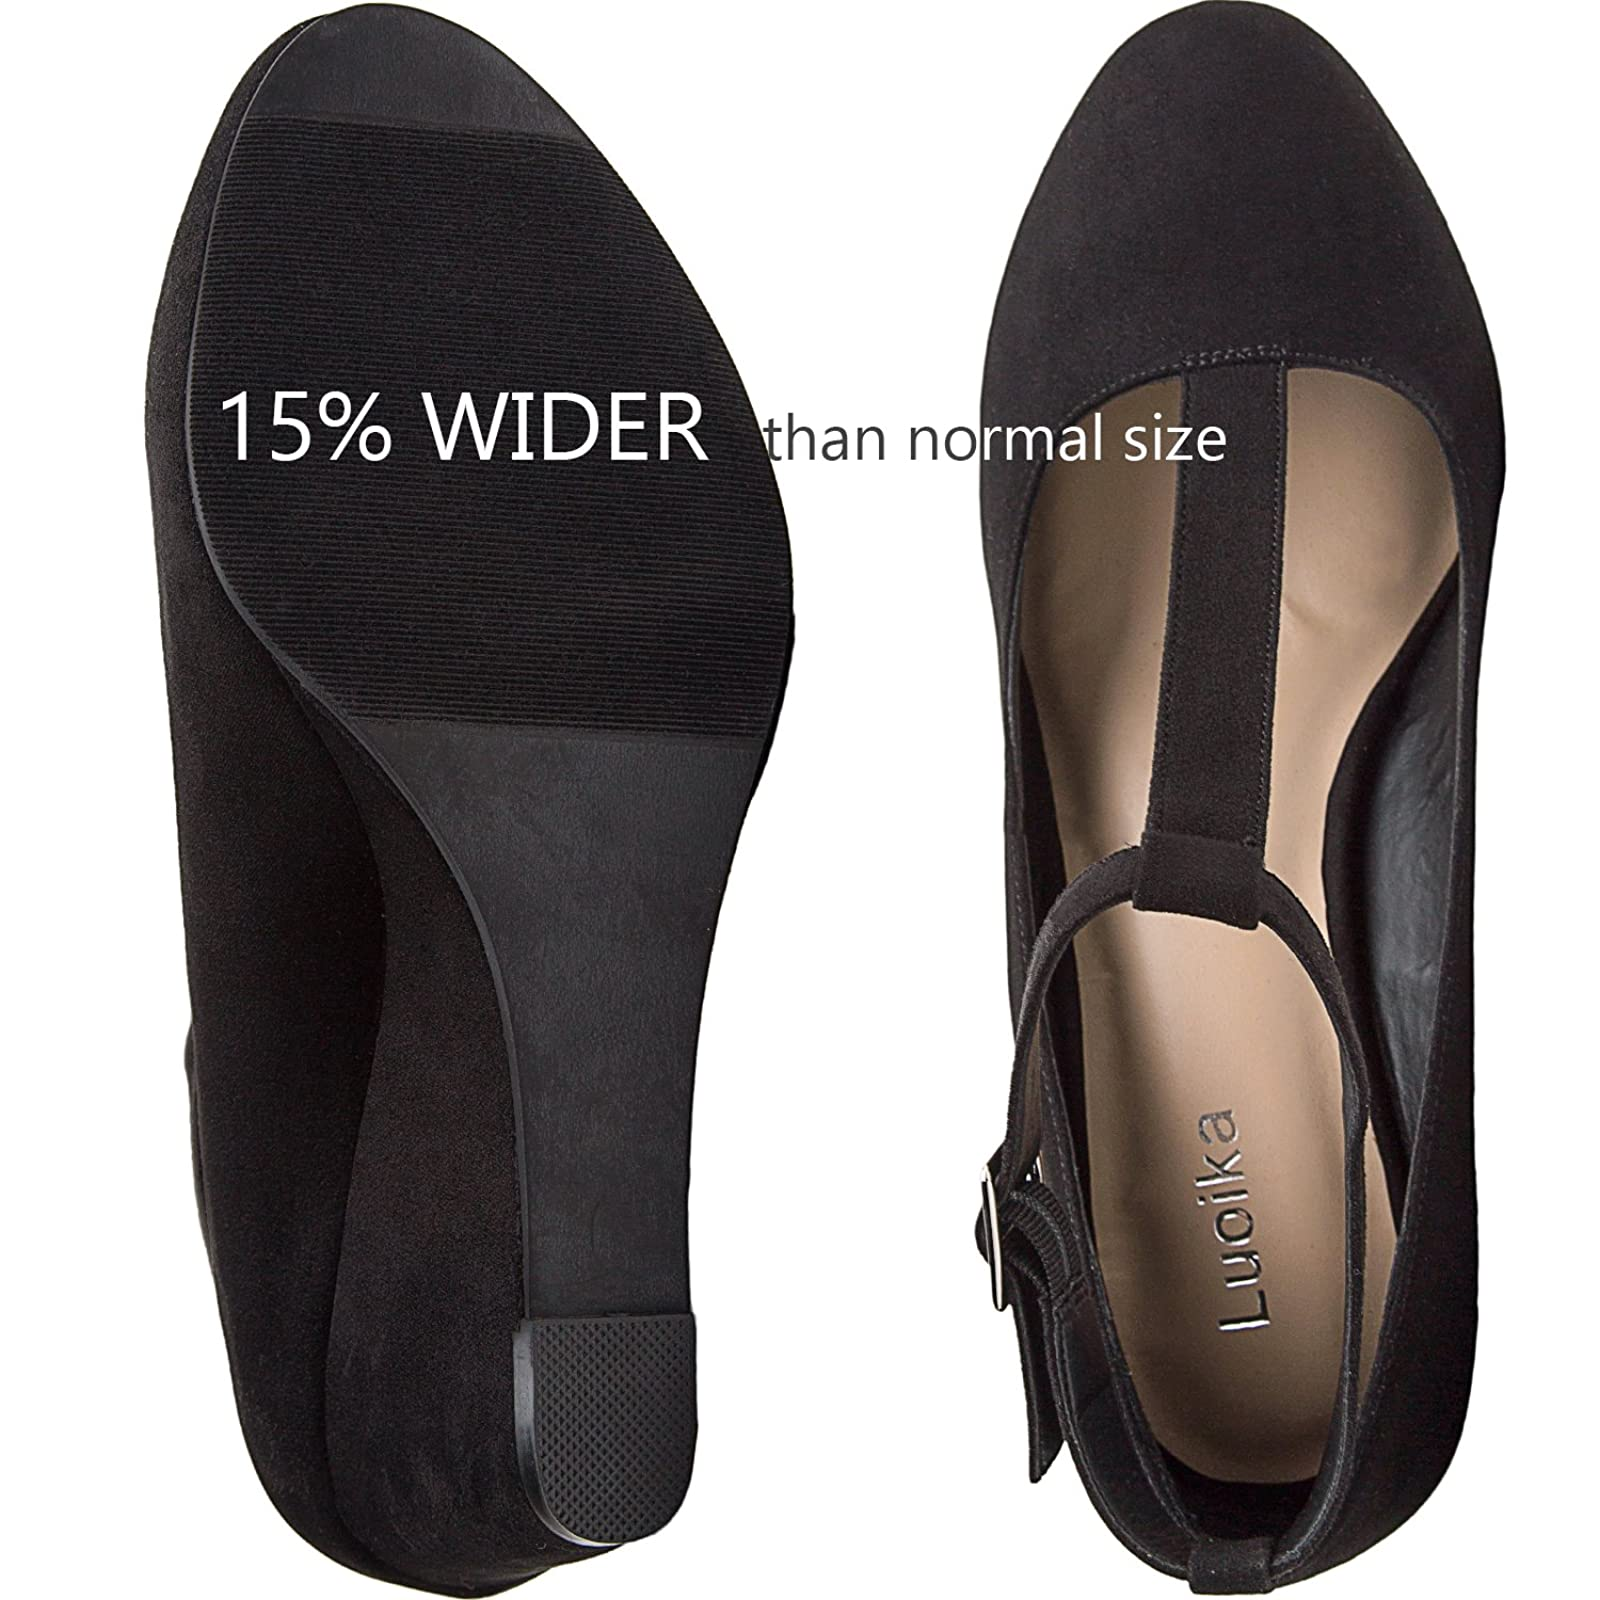 Luoika Women's Wide Width Wedge Shoes - Black 6 W(W)US - 3